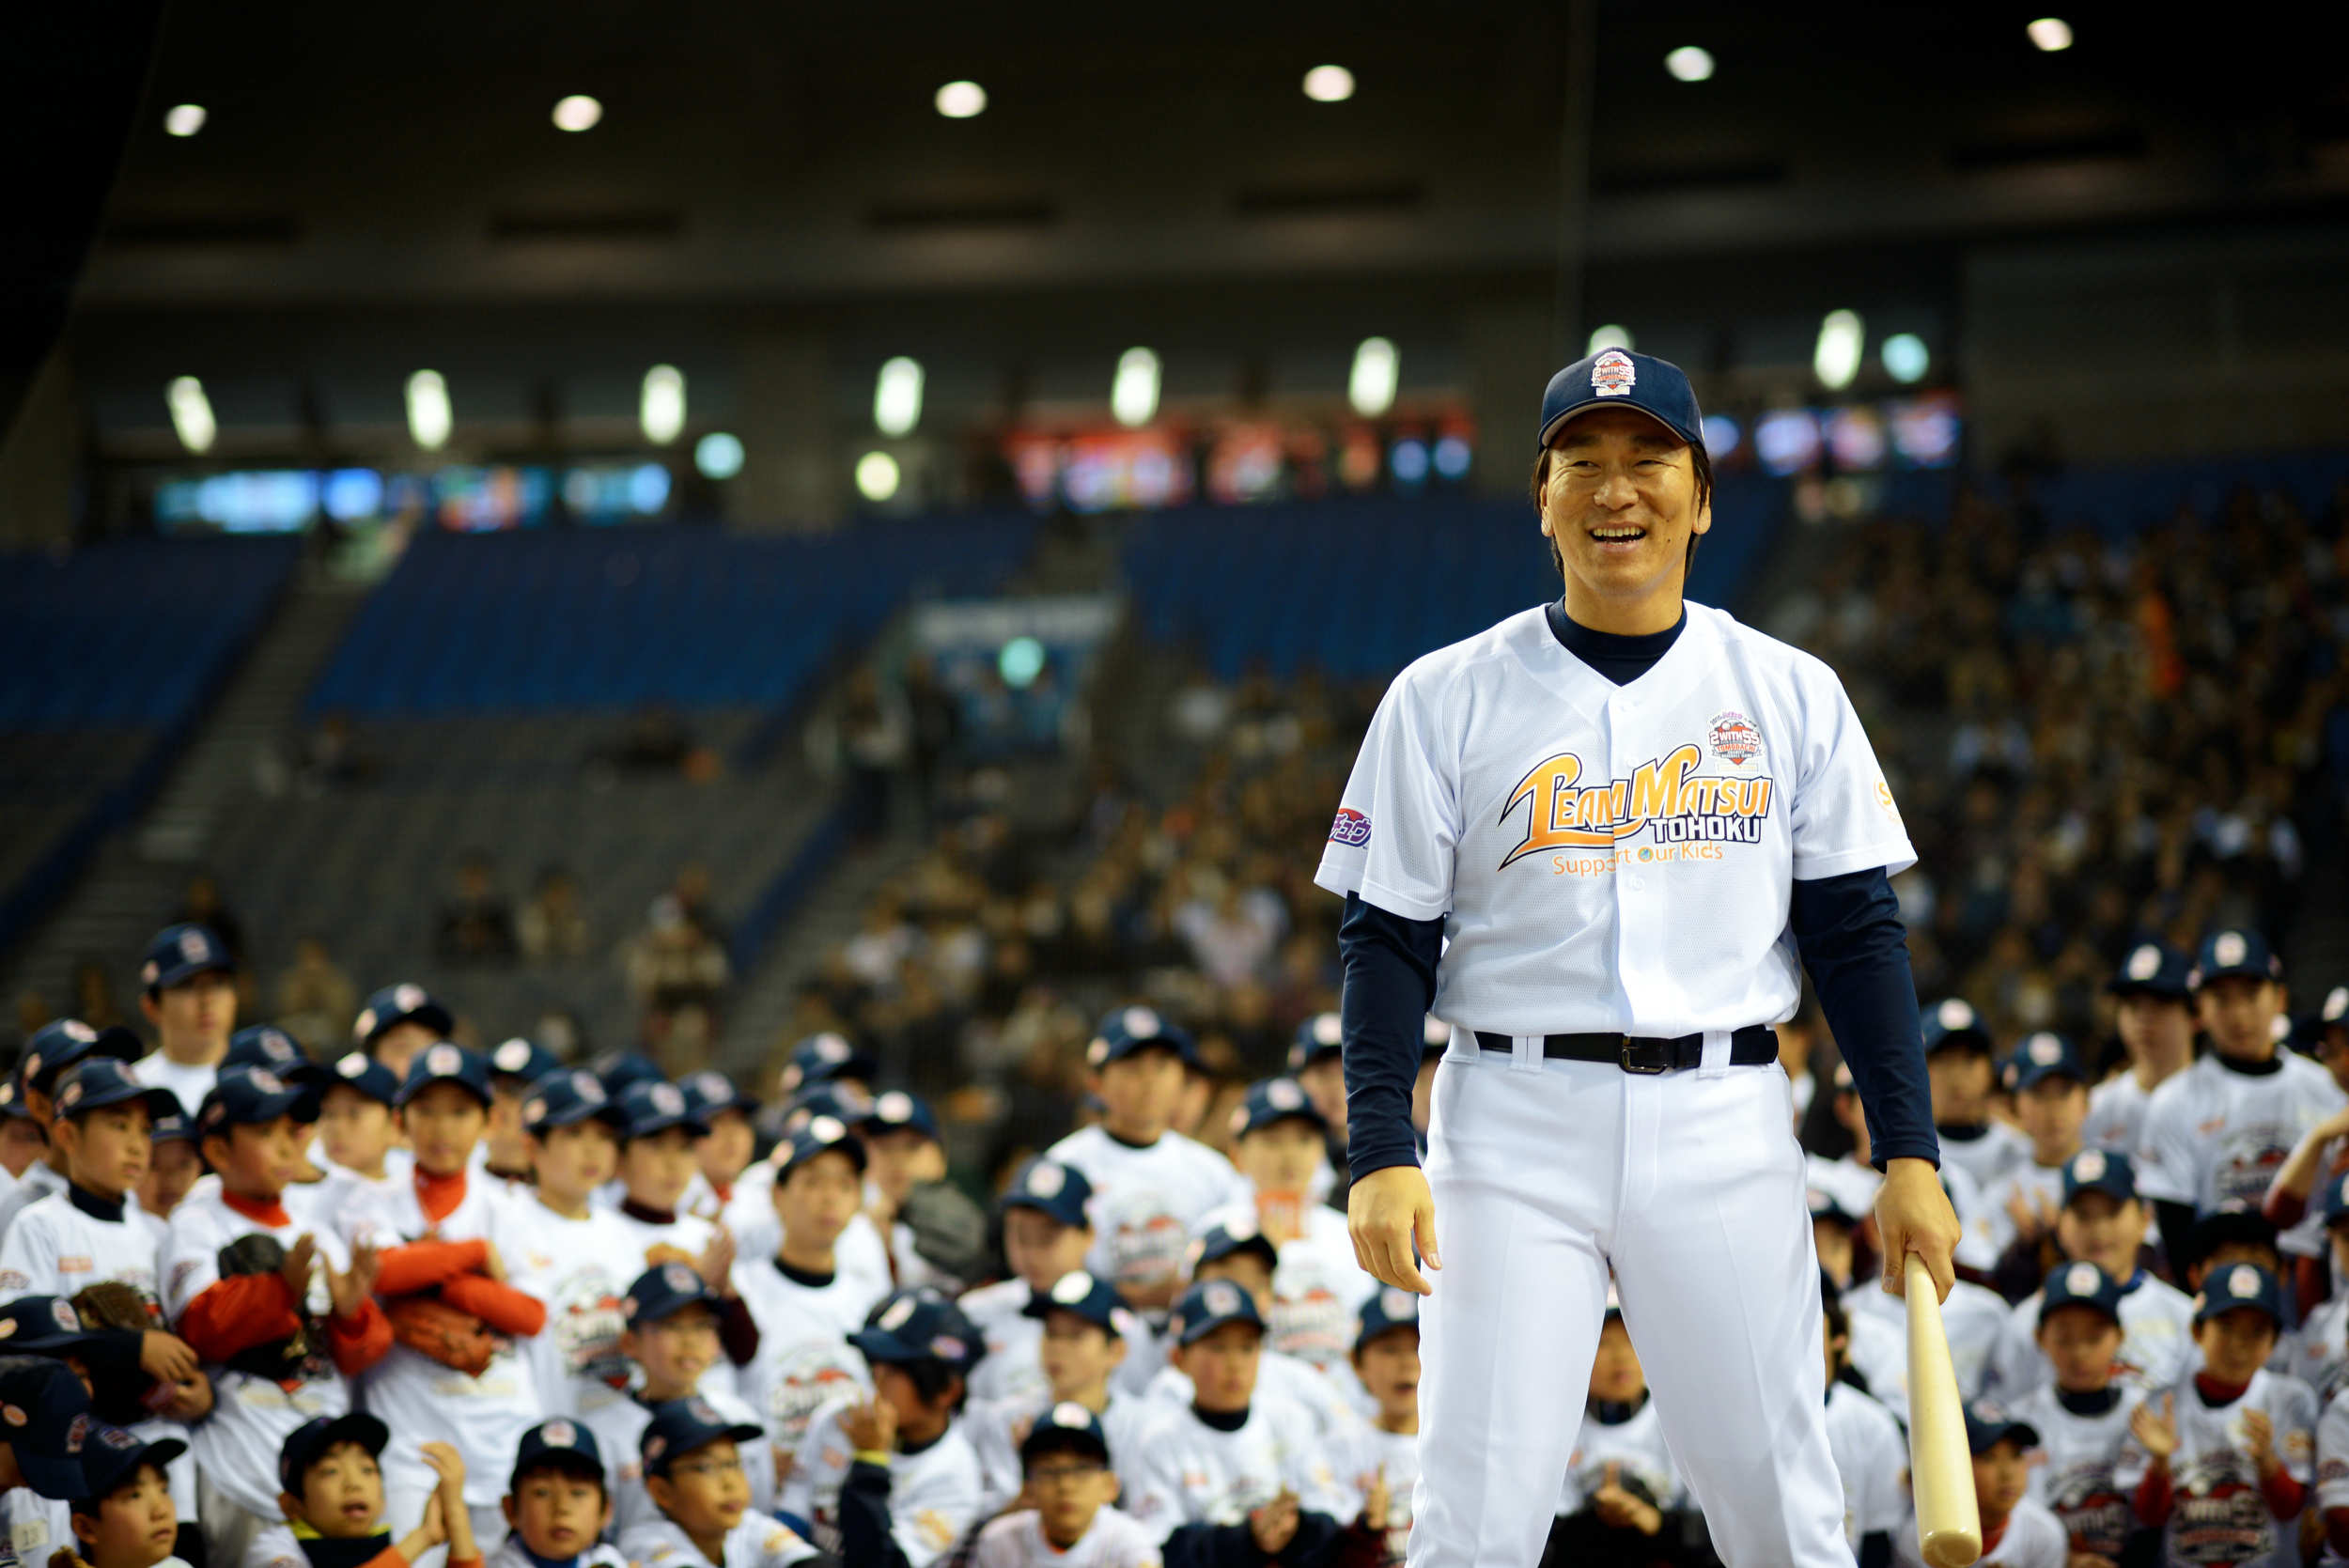 Hideki Matsui, retired New York Yankees baseball player, demonstrates how to hit a baseball for children during the Tomodachi Charity Baseball Game, March 21, 2015, at the Tokyo Dome, Japan. The game helped to raise awareness for children impacted by the Great East Japan Earthquake. (U.S. Air Force photo by Airman 1st Class Delano Scott/Released)